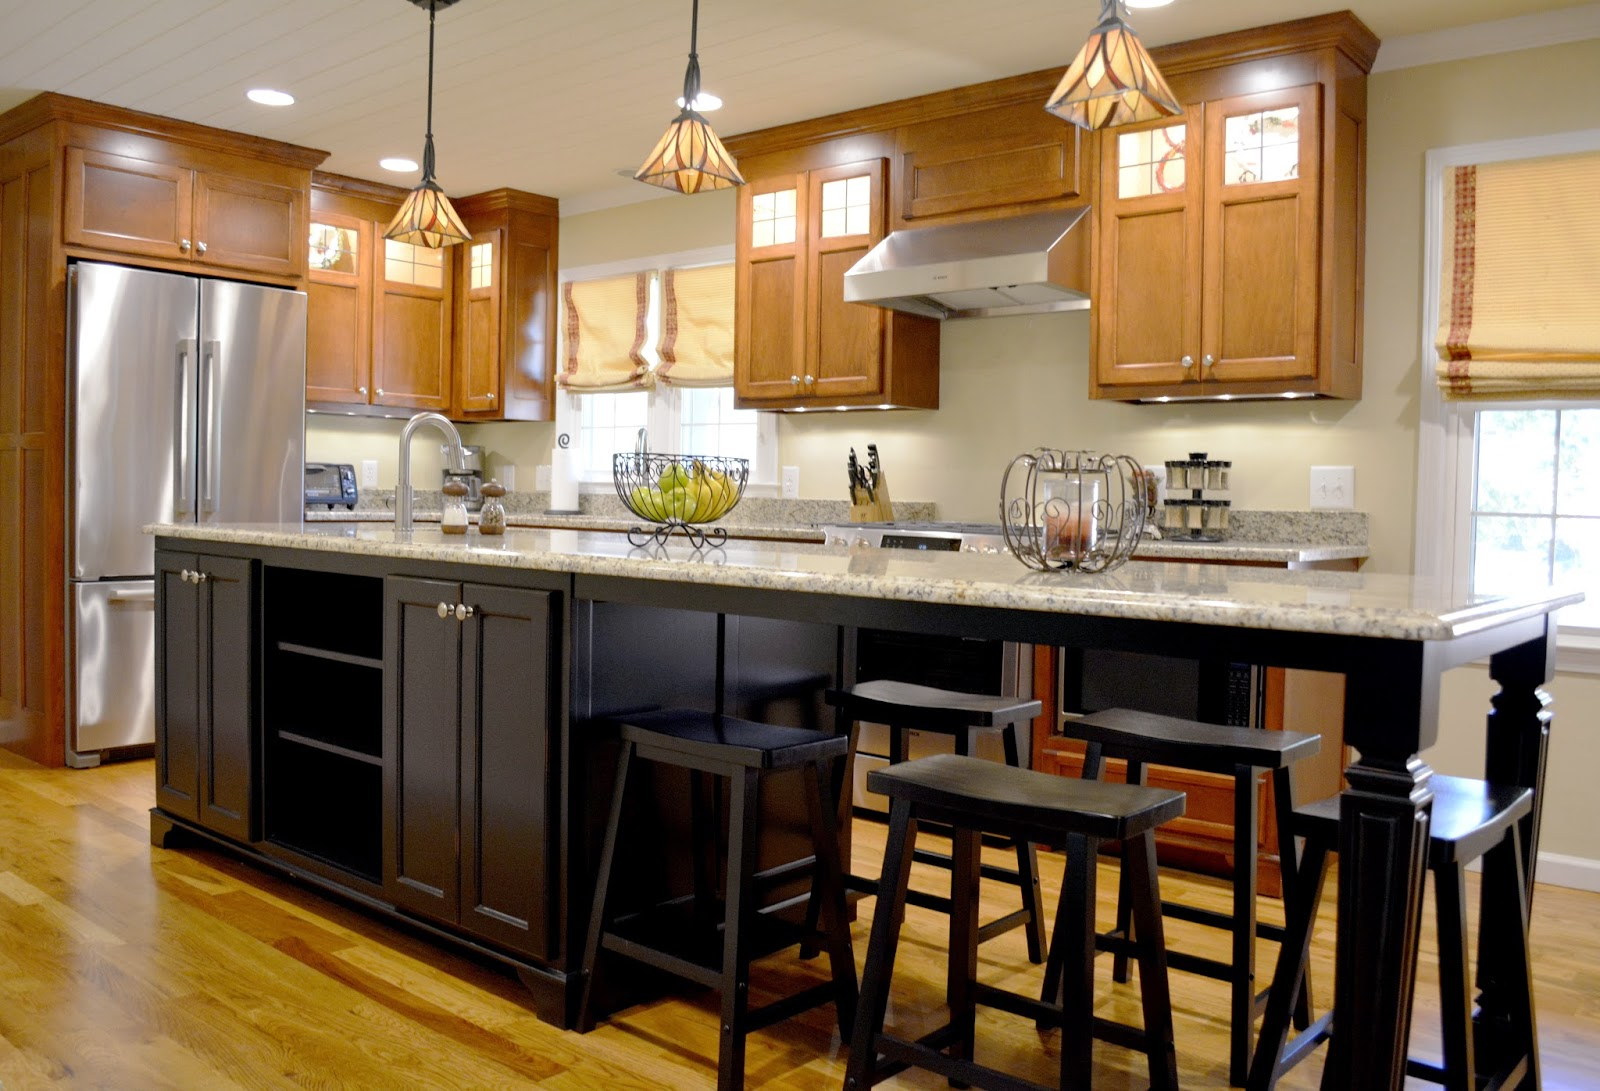 From dark to dreamy a modest kitchen makeover with bold - Kitchen island with seating for 6 ...